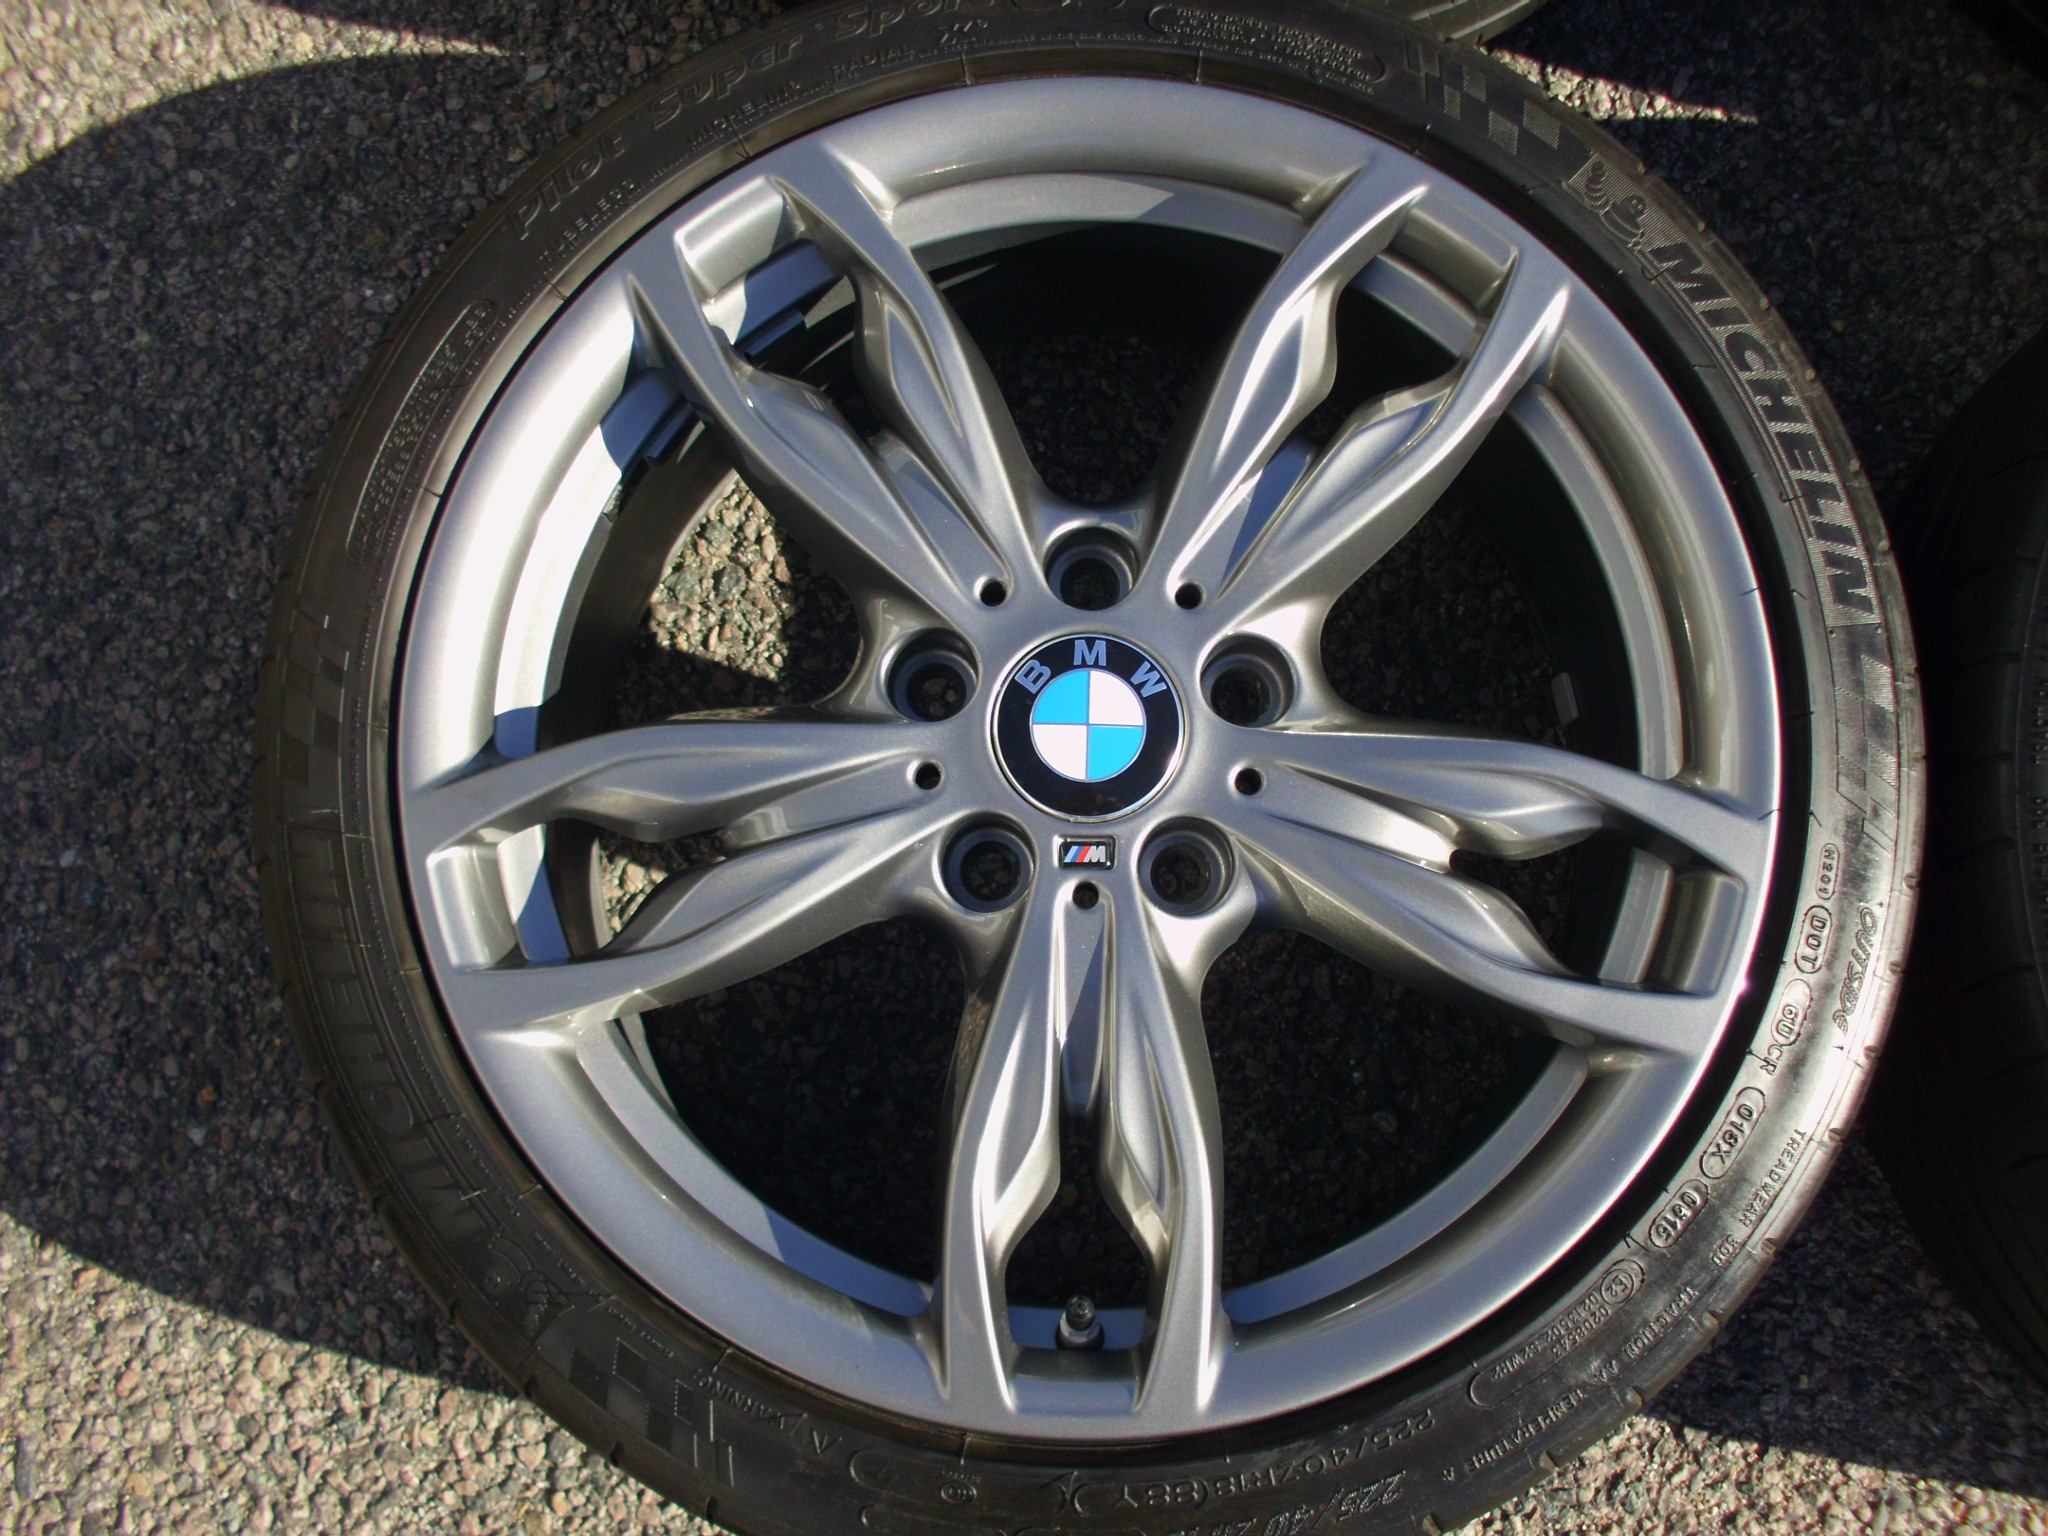 "USED 18"" GENUINE STYLE 436M DOUBLE SPOKE ALLOY WHEELS, NEAR UNMARKED,WIDE REAR INC MICHELIN PILOT SUPER SPORT TYRES AND PRESSURE SENSORS"